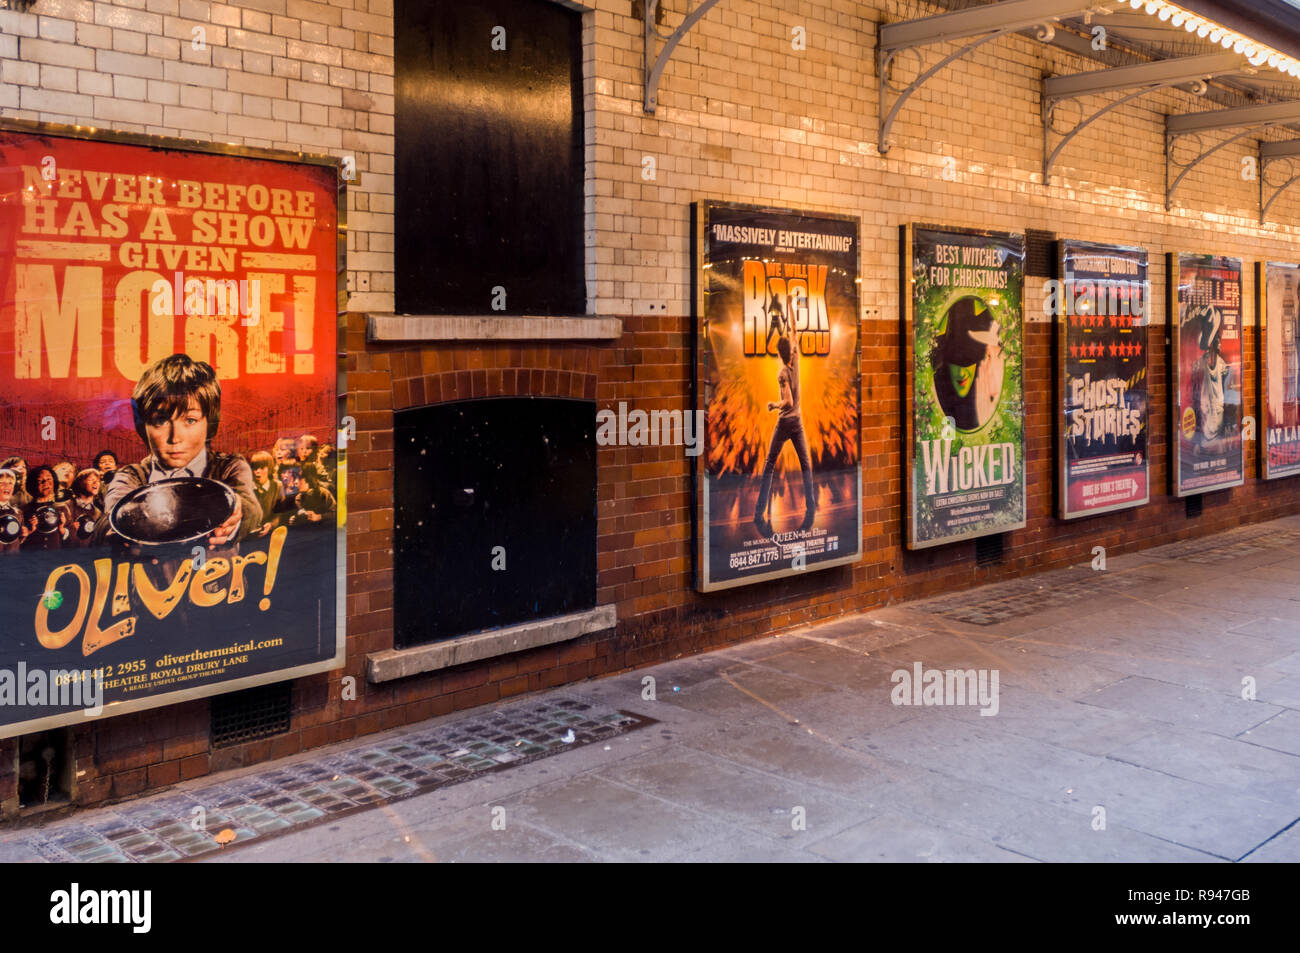 west end show advertising posters Stock Photo